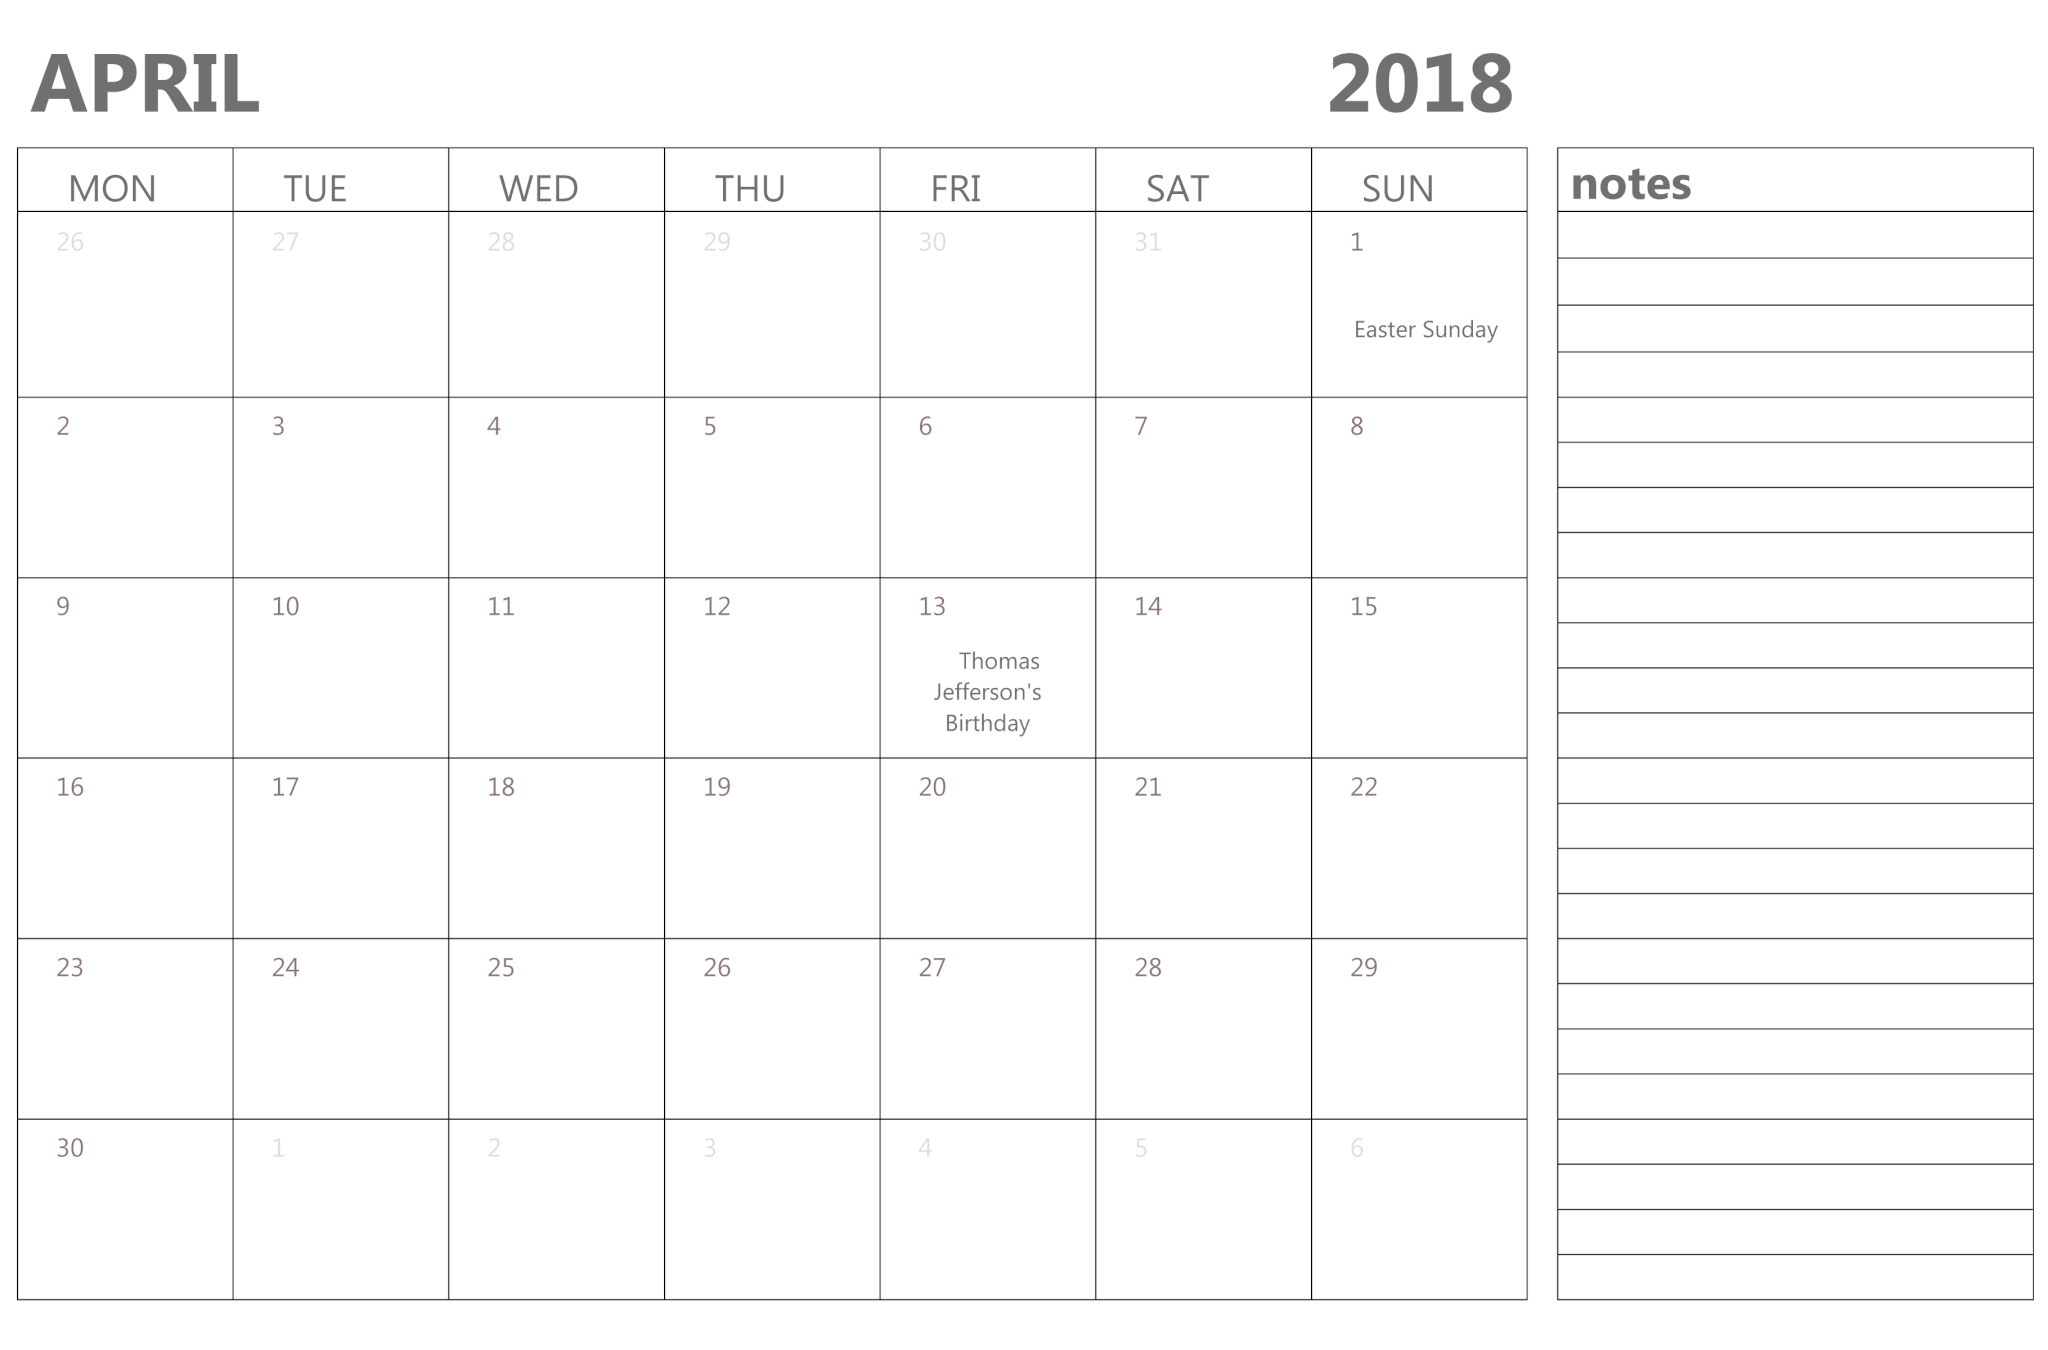 April 2018 Calendar With Notes